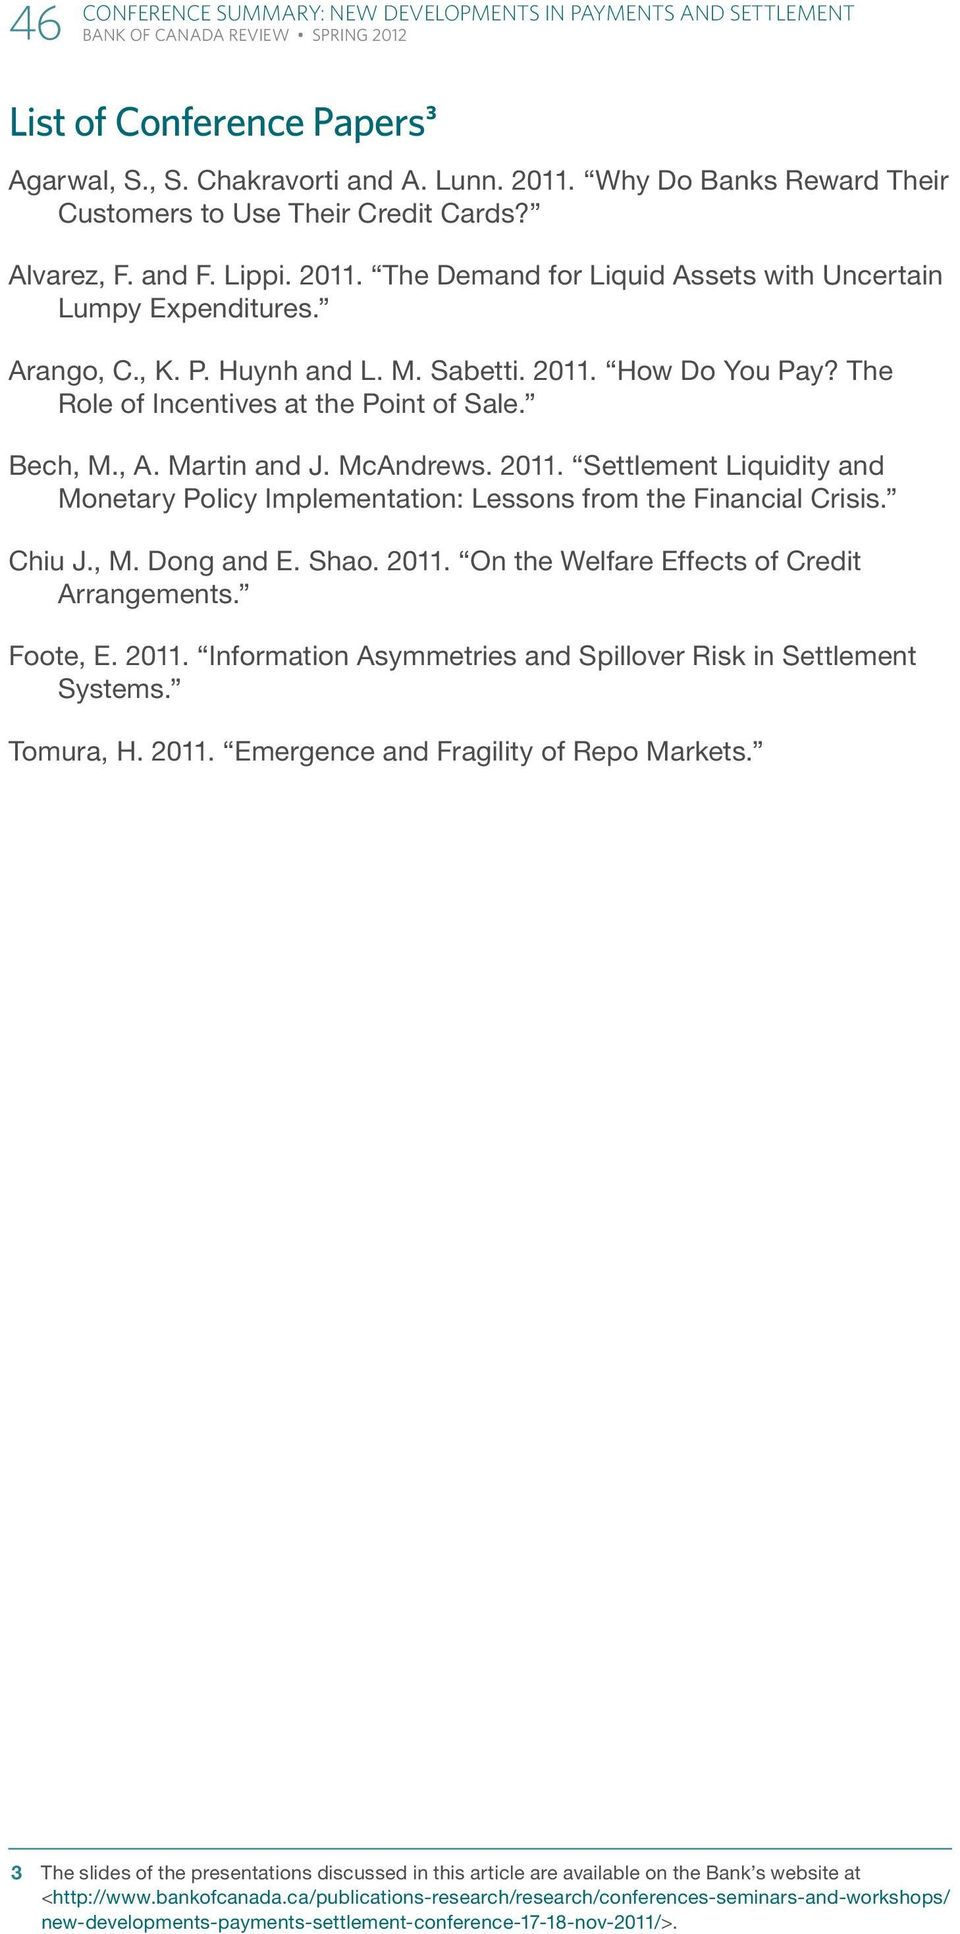 Chiu J., M. Dong and E. Shao. 2011. On the Welfare Effects of Credit Arrangements. Foote, E. 2011. Information Asymmetries and Spillover Risk in Settlement Systems. Tomura, H. 2011. Emergence and Fragility of Repo Markets.